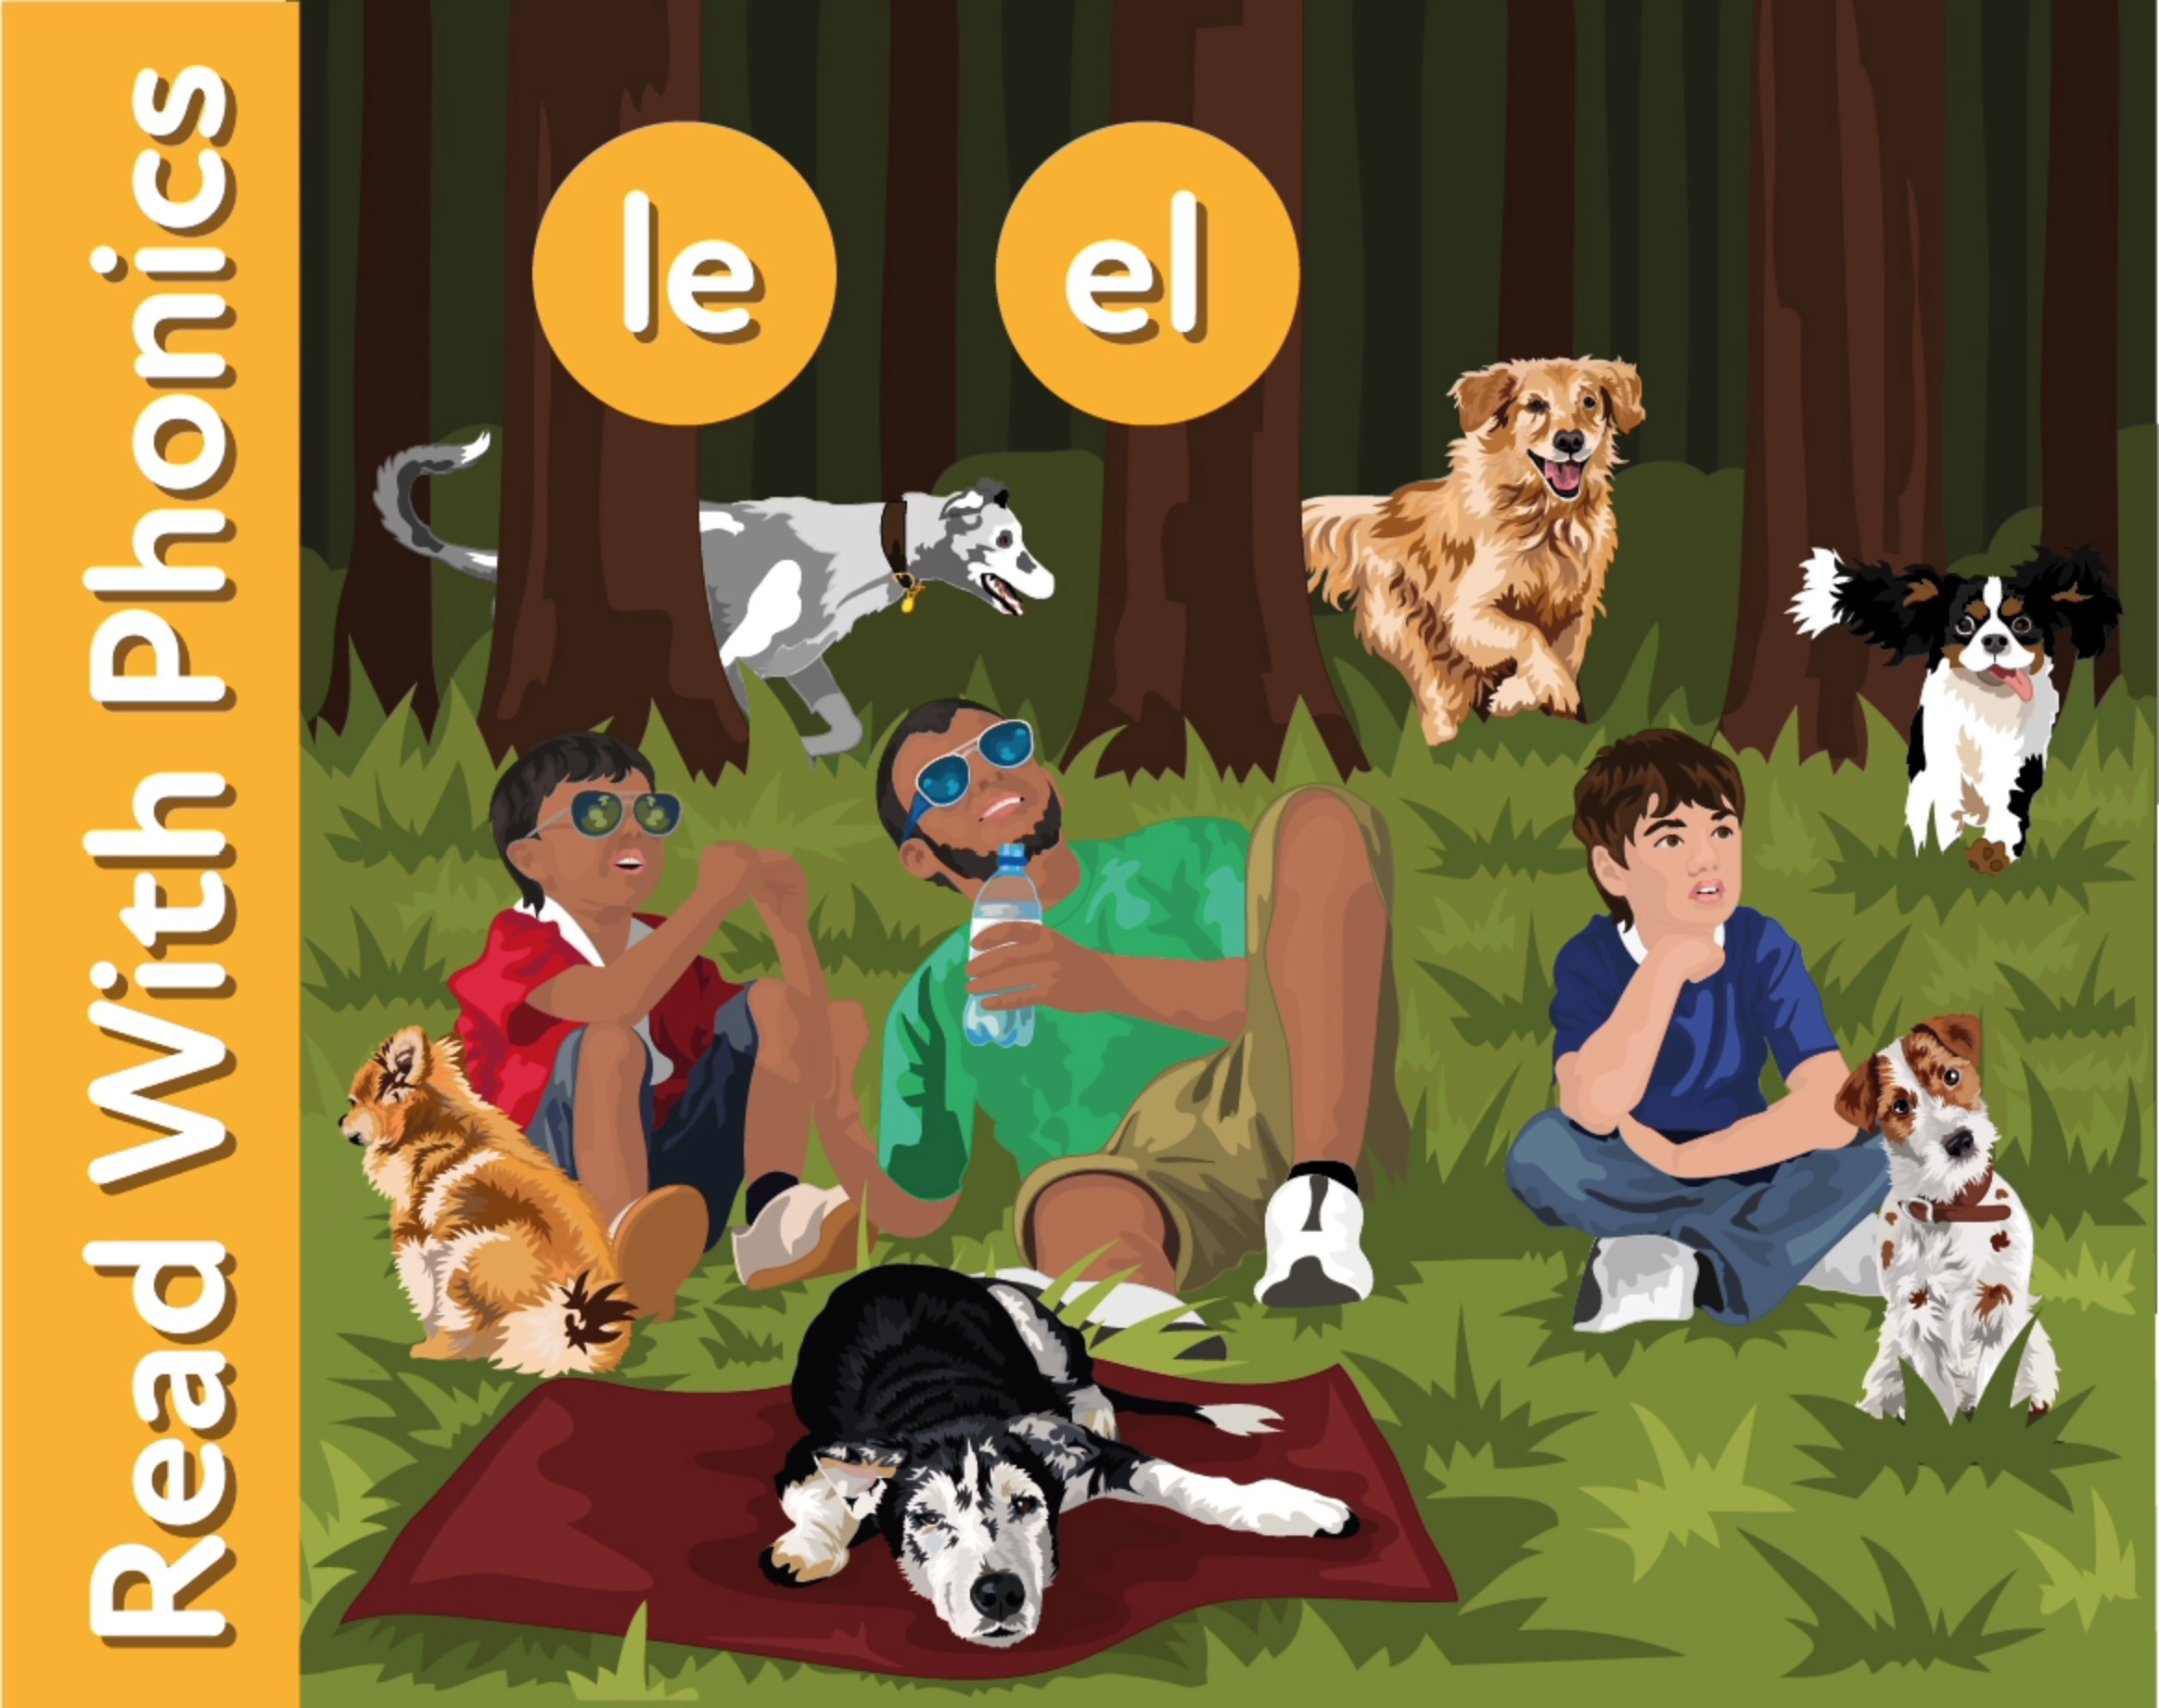 Walking The Dogs: Learn Words Ending In 'le' and 'el'